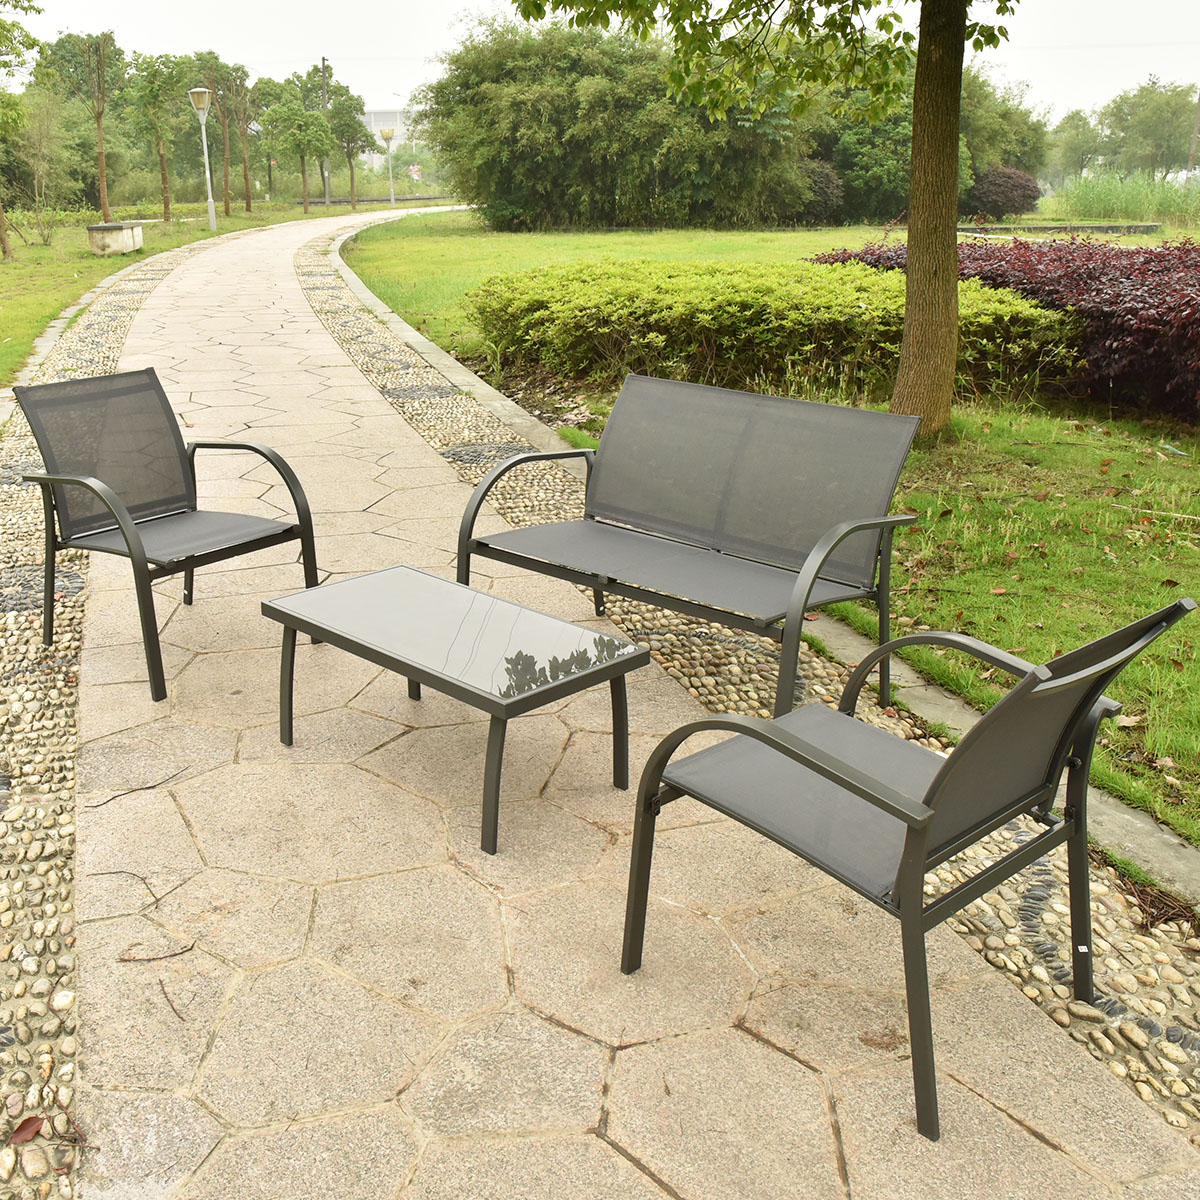 Bon Costway 4PCS Patio Garden Furniture Set Steel Frame Outdoor Lawn Sofa  Chairs Table Gray   Walmart.com